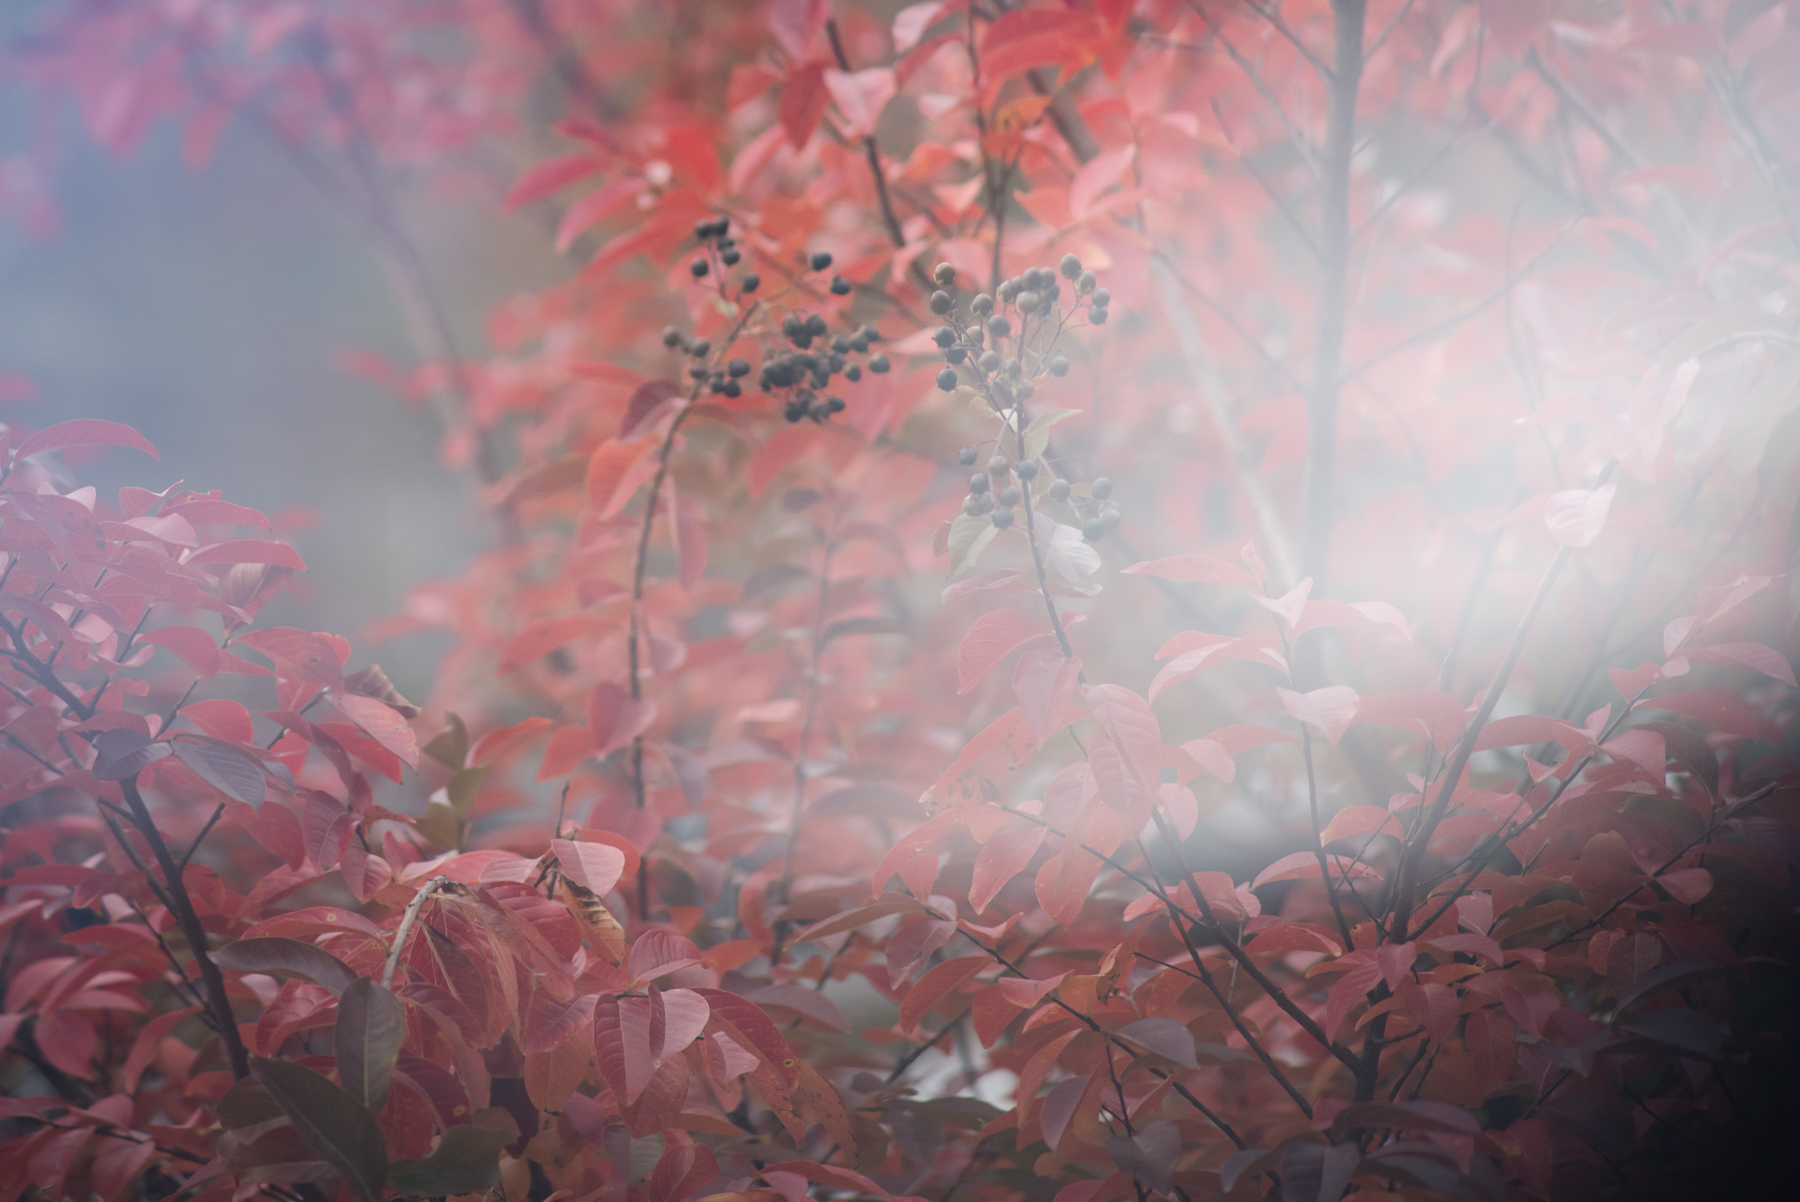 freelensed photo of red fall foliage by megan cieloha